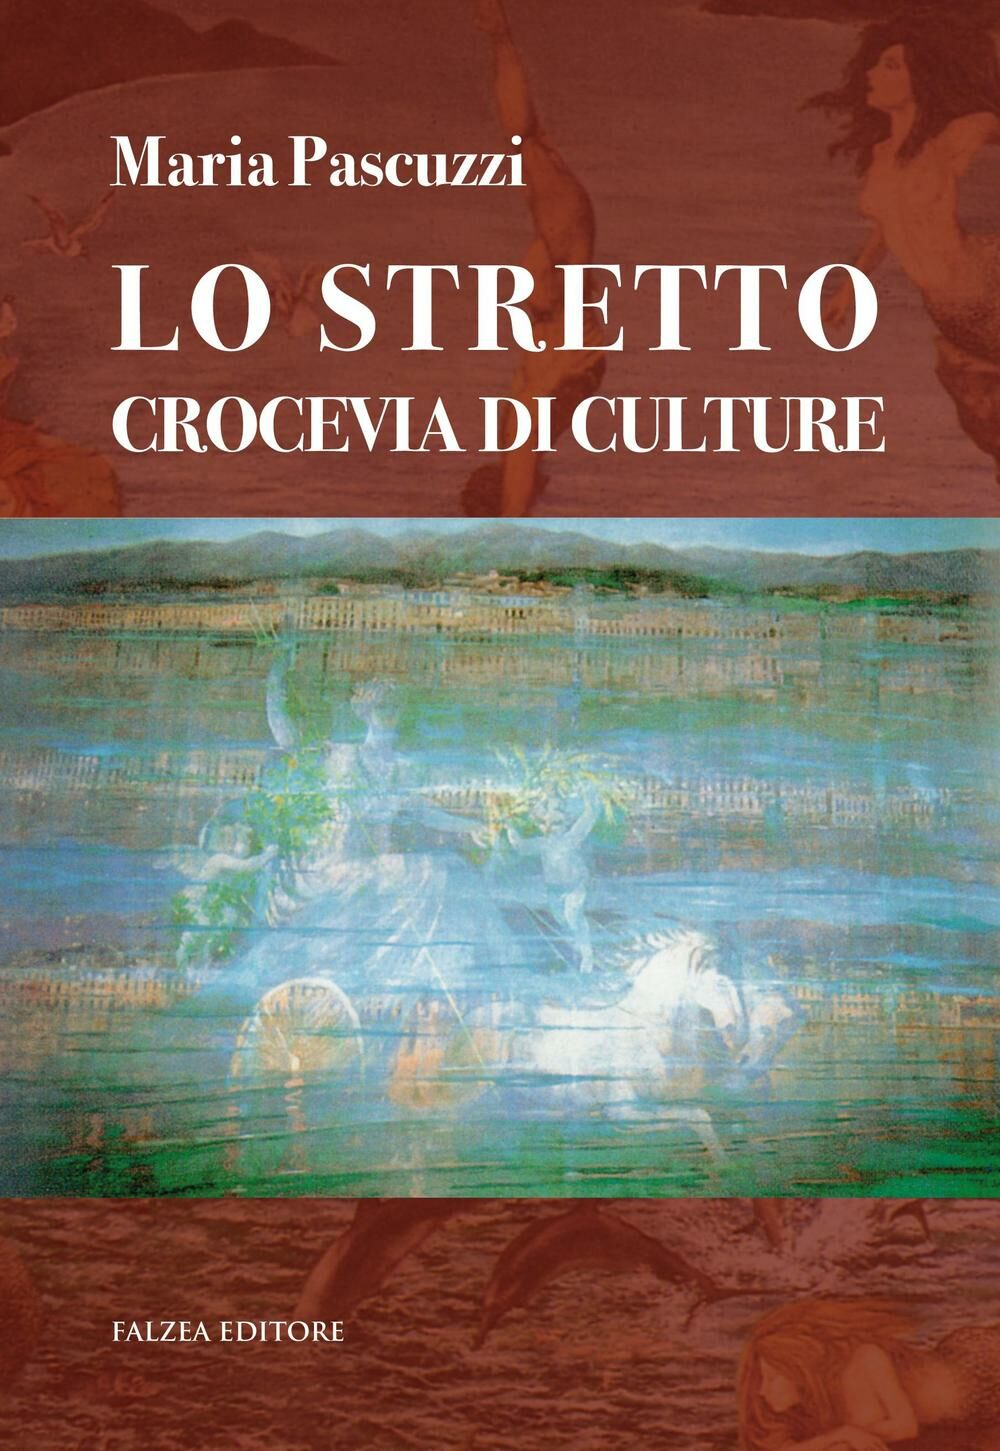 Lo stretto crocevia di culture